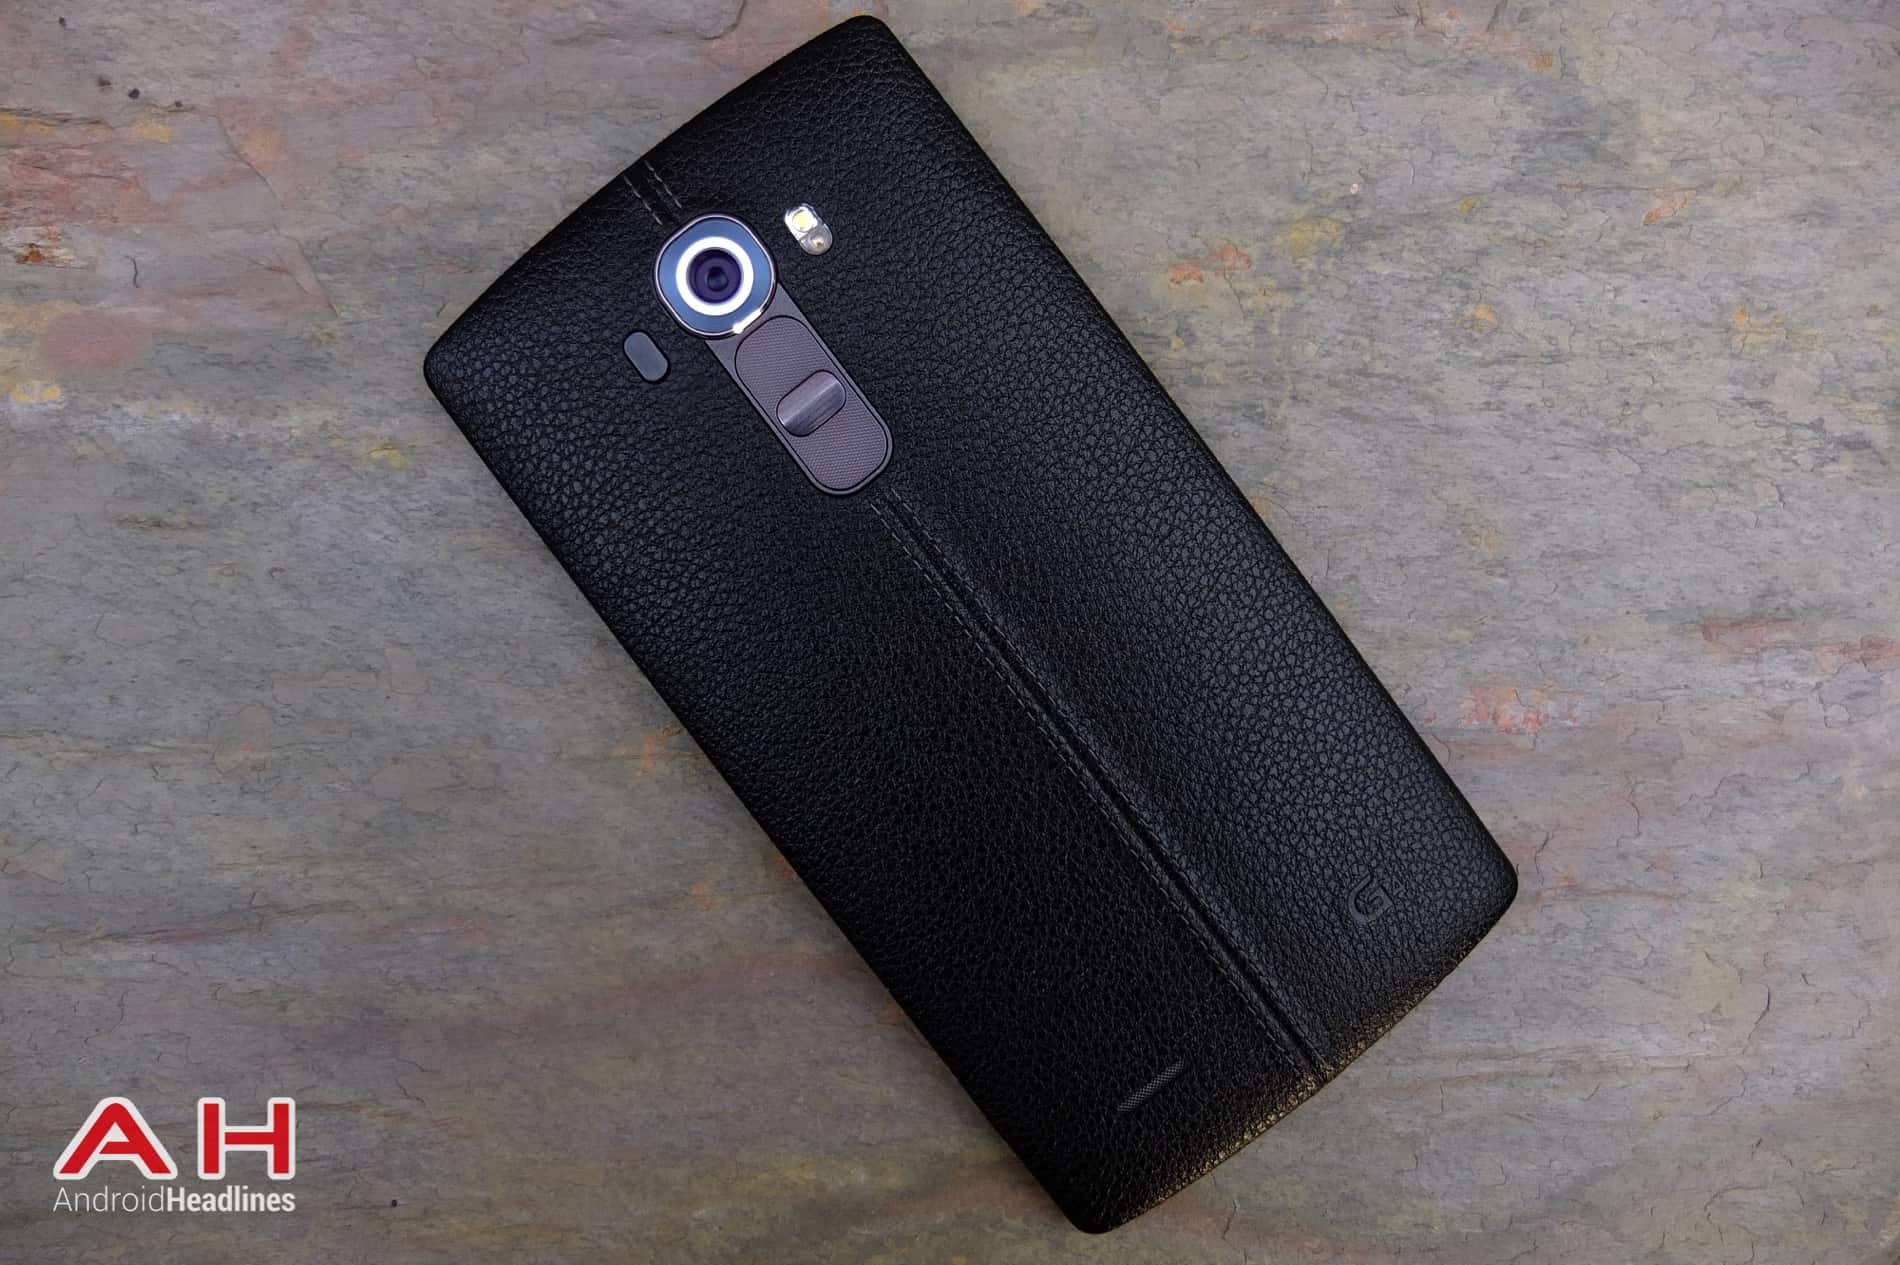 LG G4 BlackLeather TD AH 12